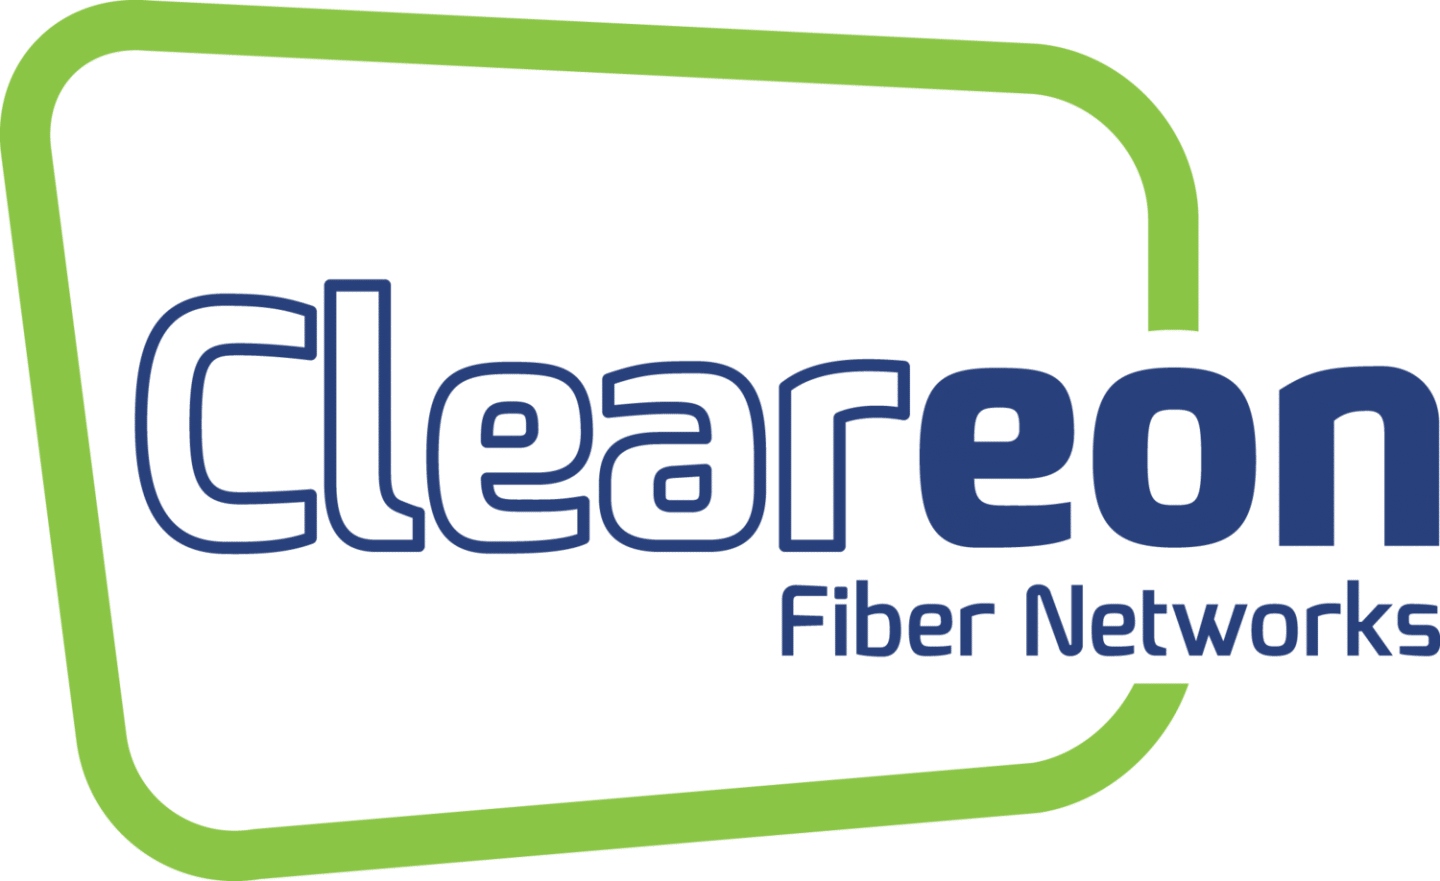 Cleareon Fiber Networks Establishes Point of Presence in Digital Realty's 111 8th Avenue Colocation Facility in New York City